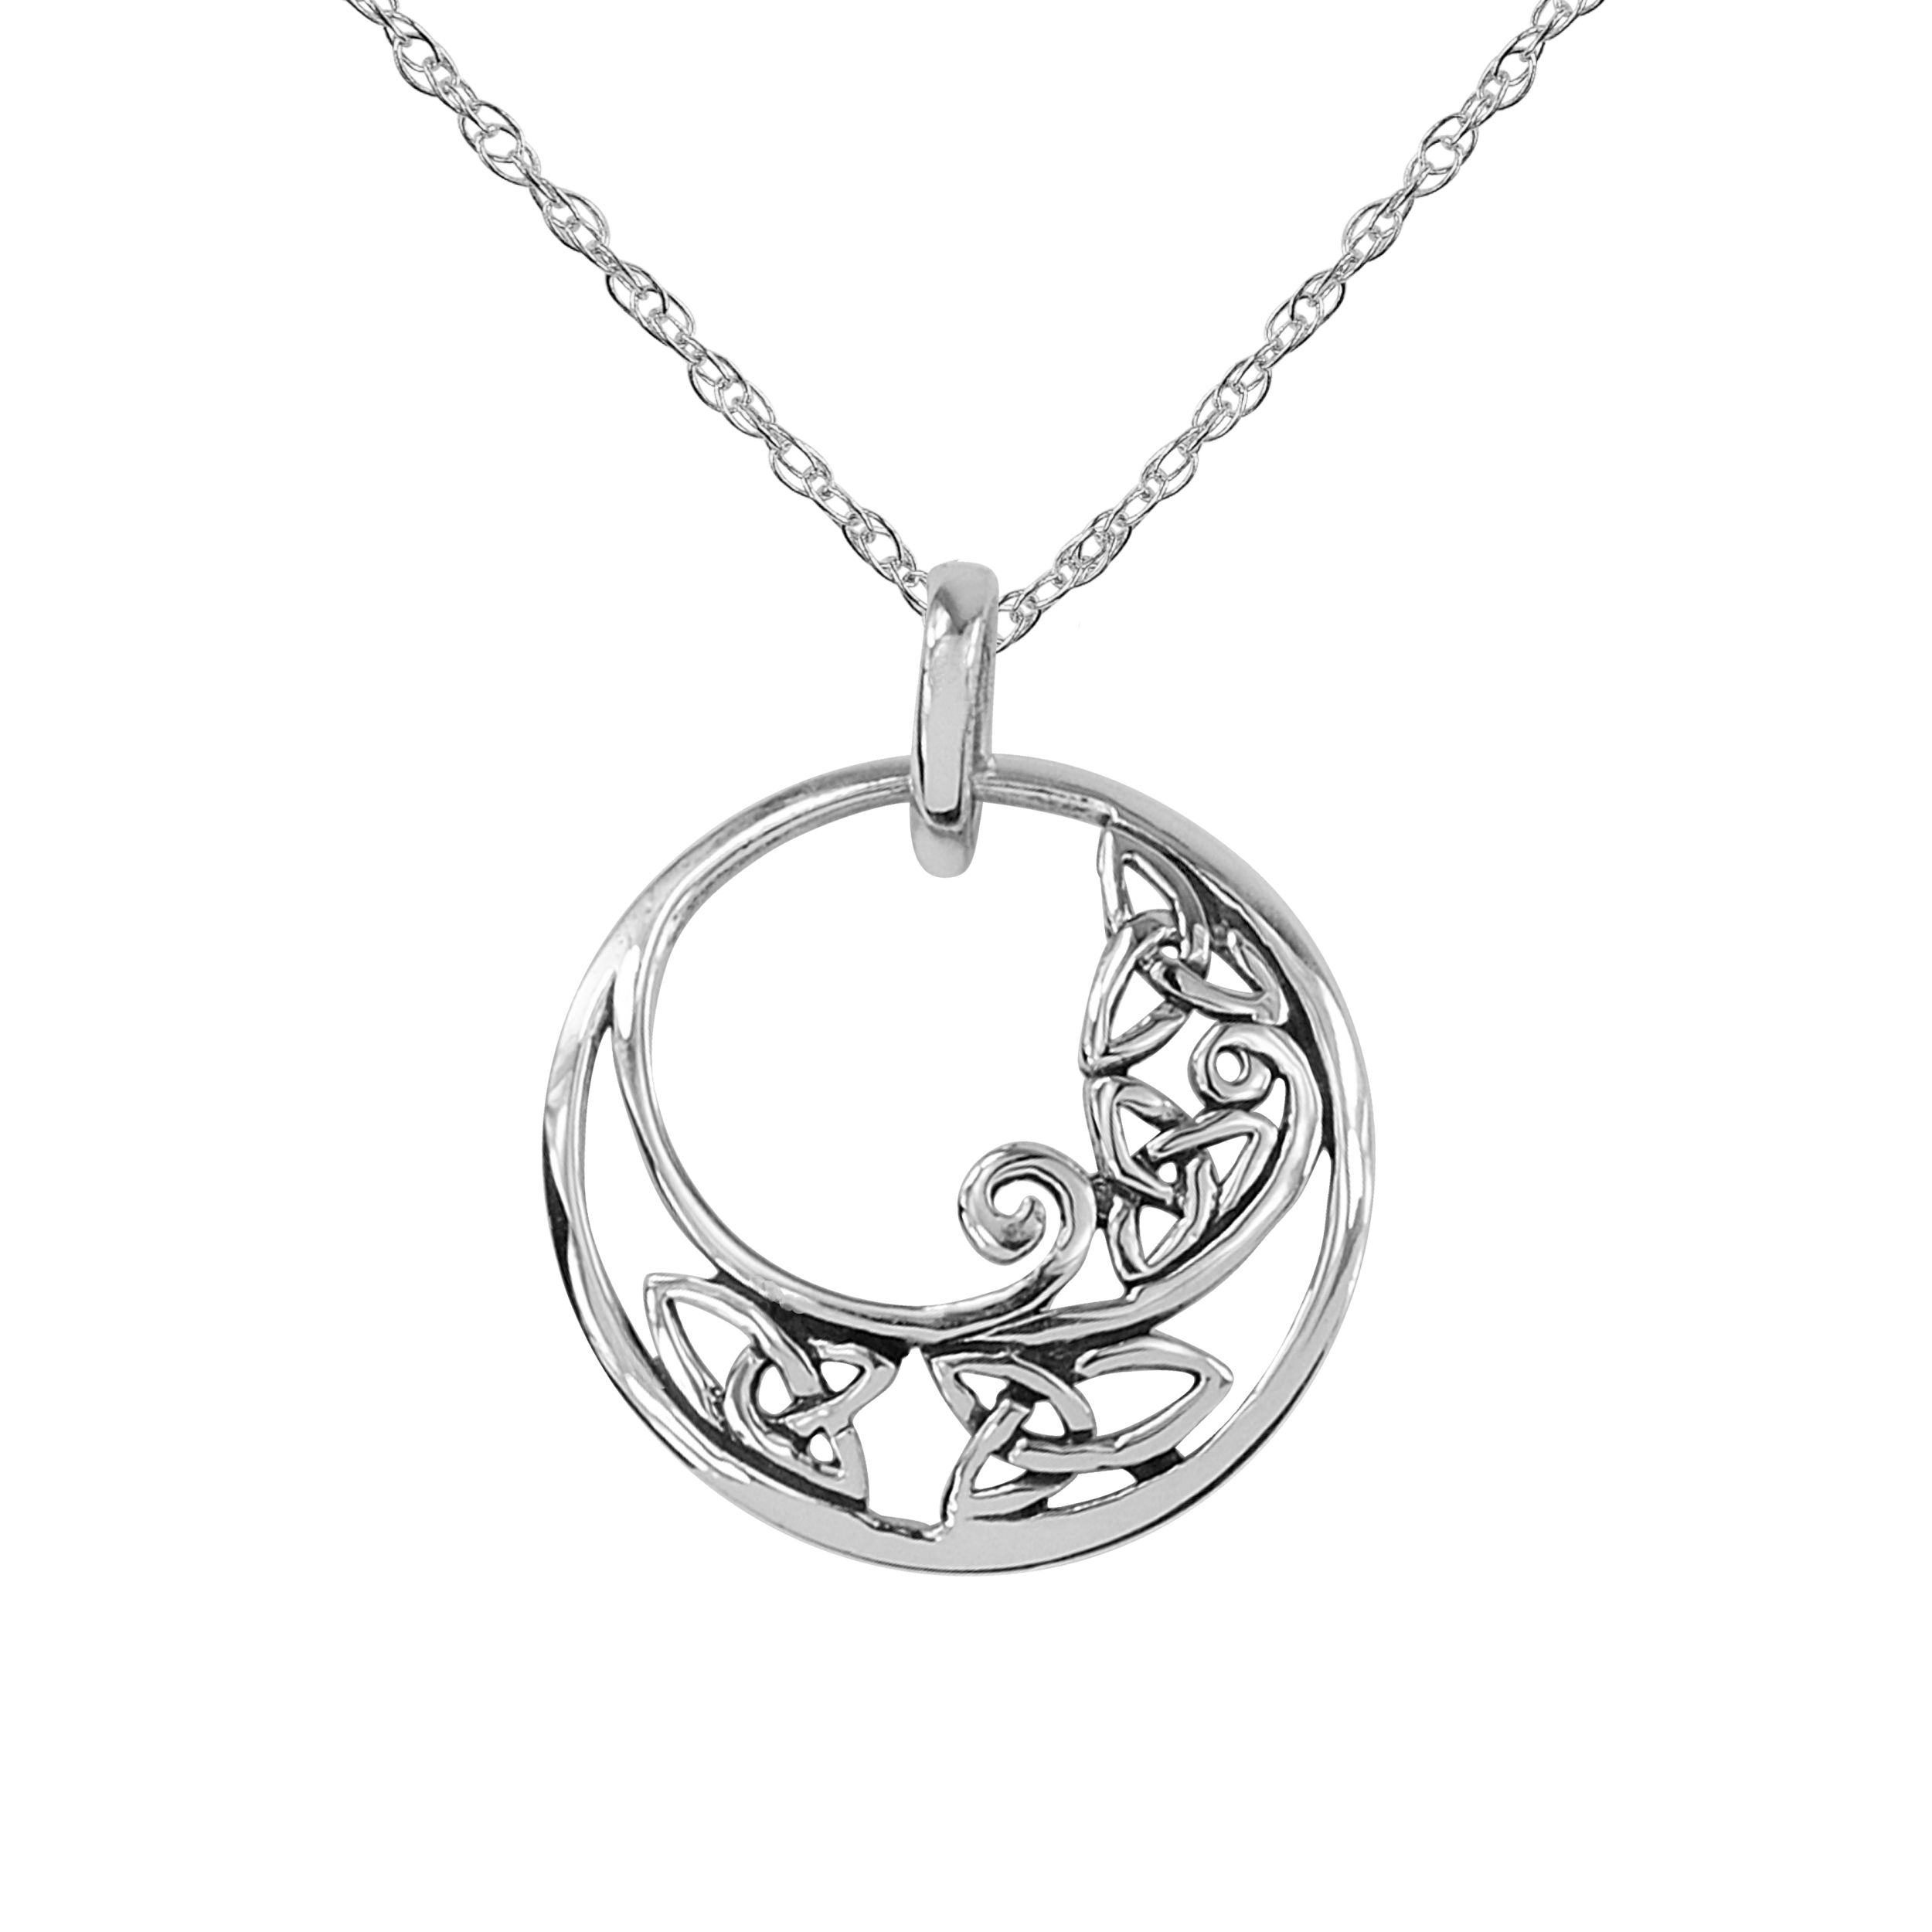 design filigree silver pendant jewellery options bingefashion circle pendants in trendy auqhsli sterling